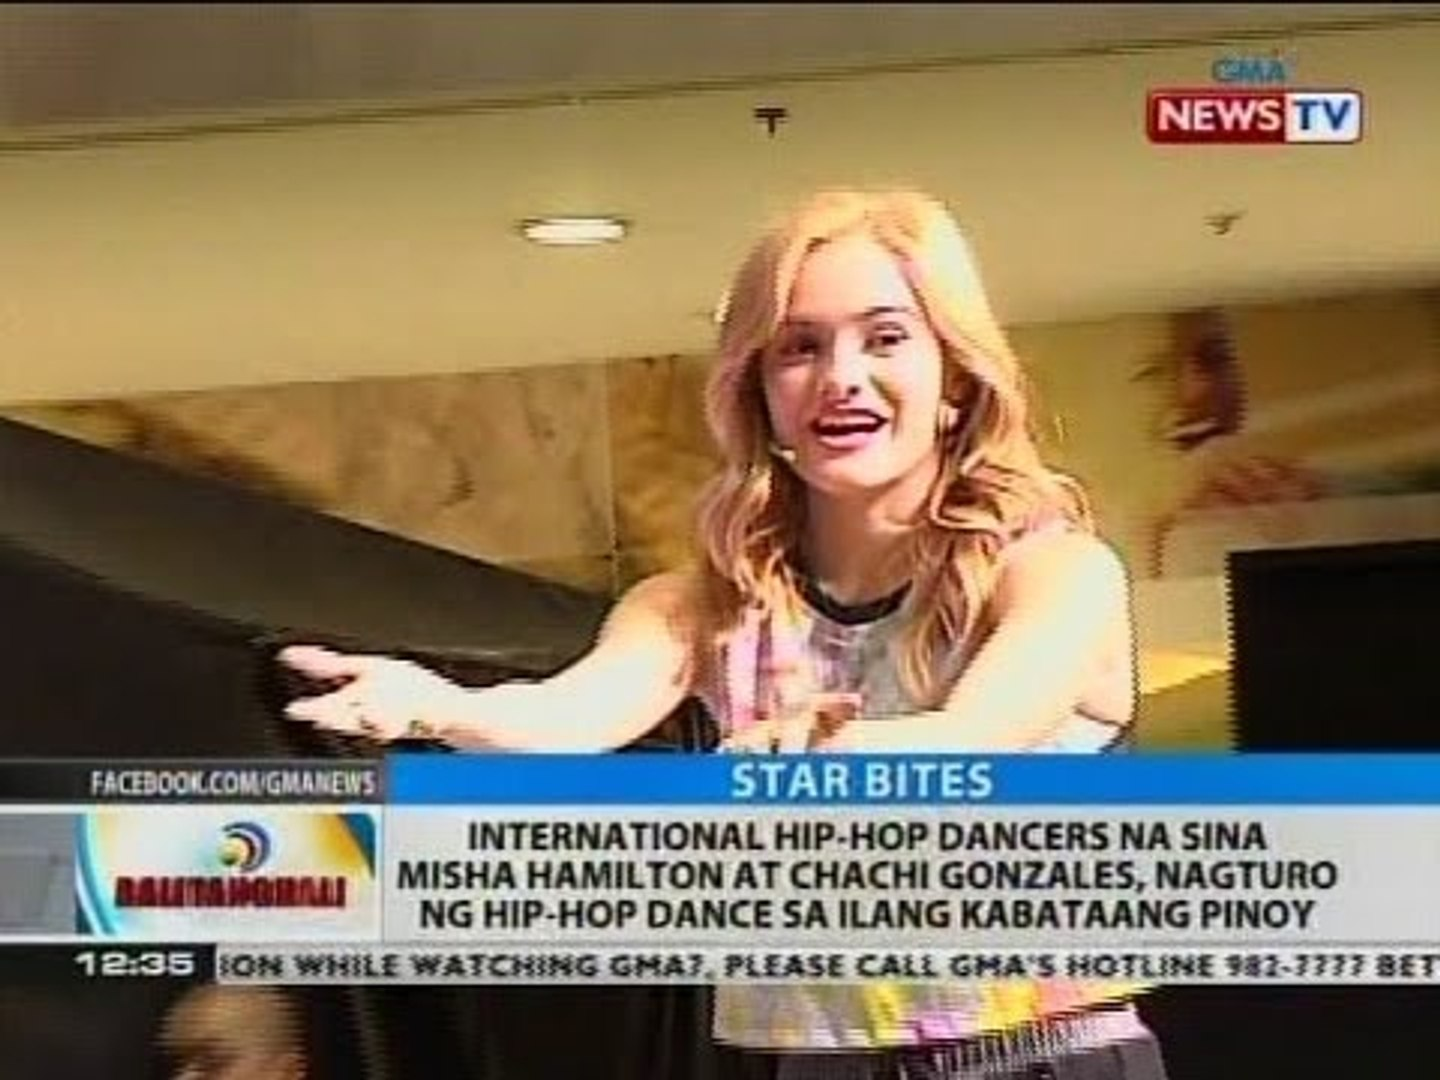 International hip-hop dancers na sina Misha Hamilton at Chachi Gonzales, nagturo ng hip-hop dance